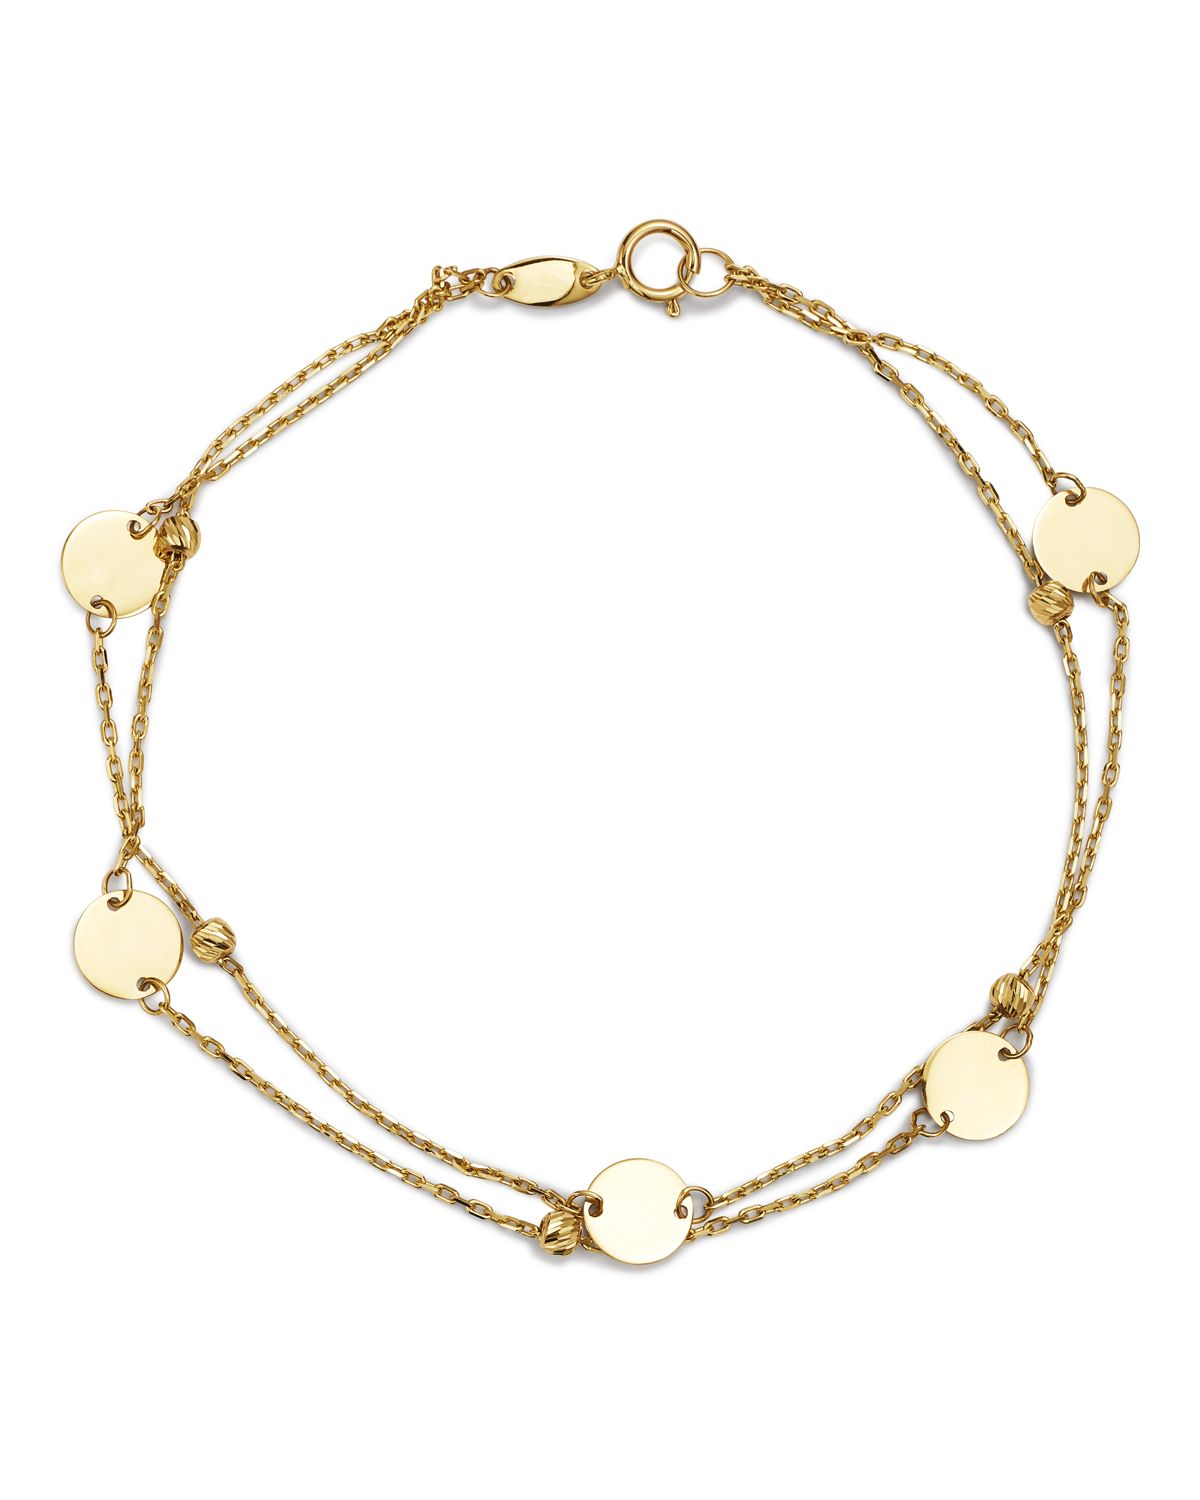 Layered Disc & Bead Bracelet In 14 K Yellow Gold   100 Percents Exclusive  by Moon & Meadow